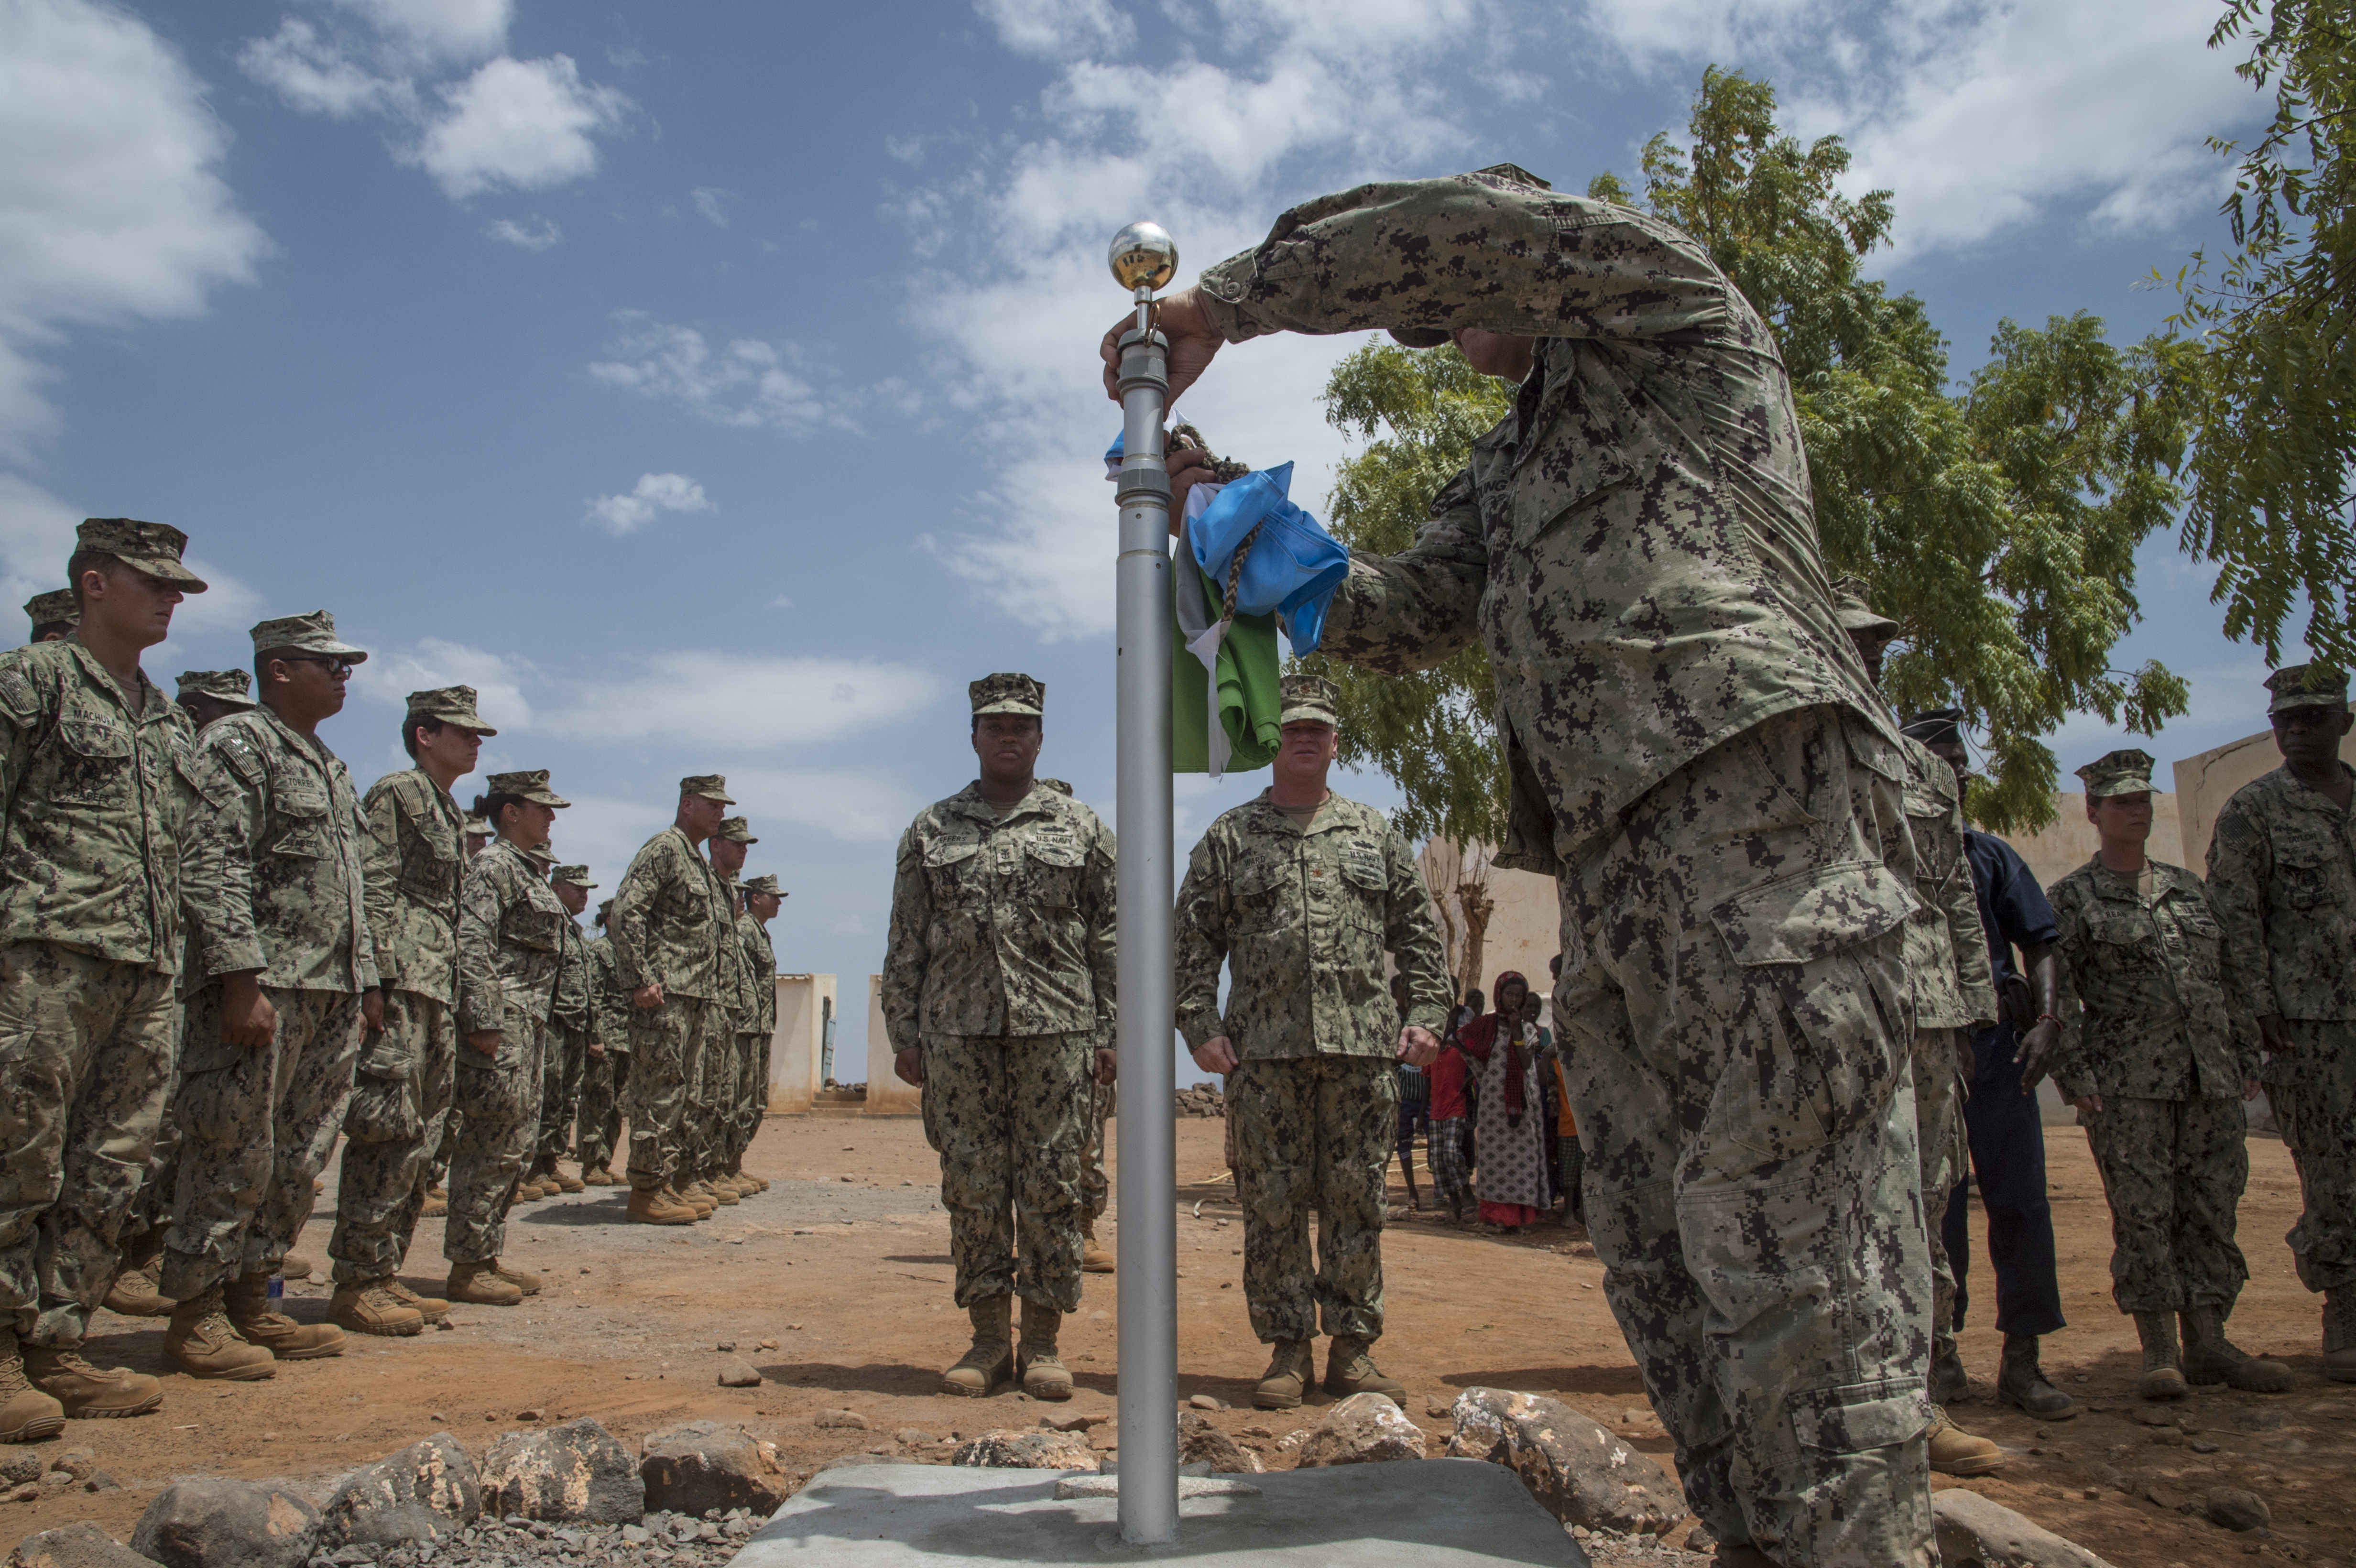 U.S. Navy Chief Petty Officer John Young of Naval Mobile Construction Battalion ONE raises the Djiboutian flag dedicated to the local village Chief Hassan Diama as Seabees assigned to Combined Joint Task Force-Horn of Africa gather for the flag ceremony at a remote village in the Arta region of Djibouti, Aug. 17, 2017. The flag-raising ceremony represented the enduring relationships created as the NMCB 1 worked to build a clinic complex there. NMCB 133 has replaced NMCB 1 and will continue working on the project. (U.S. Air National Guard photo by Tech. Sgt. Joseph Harwood)